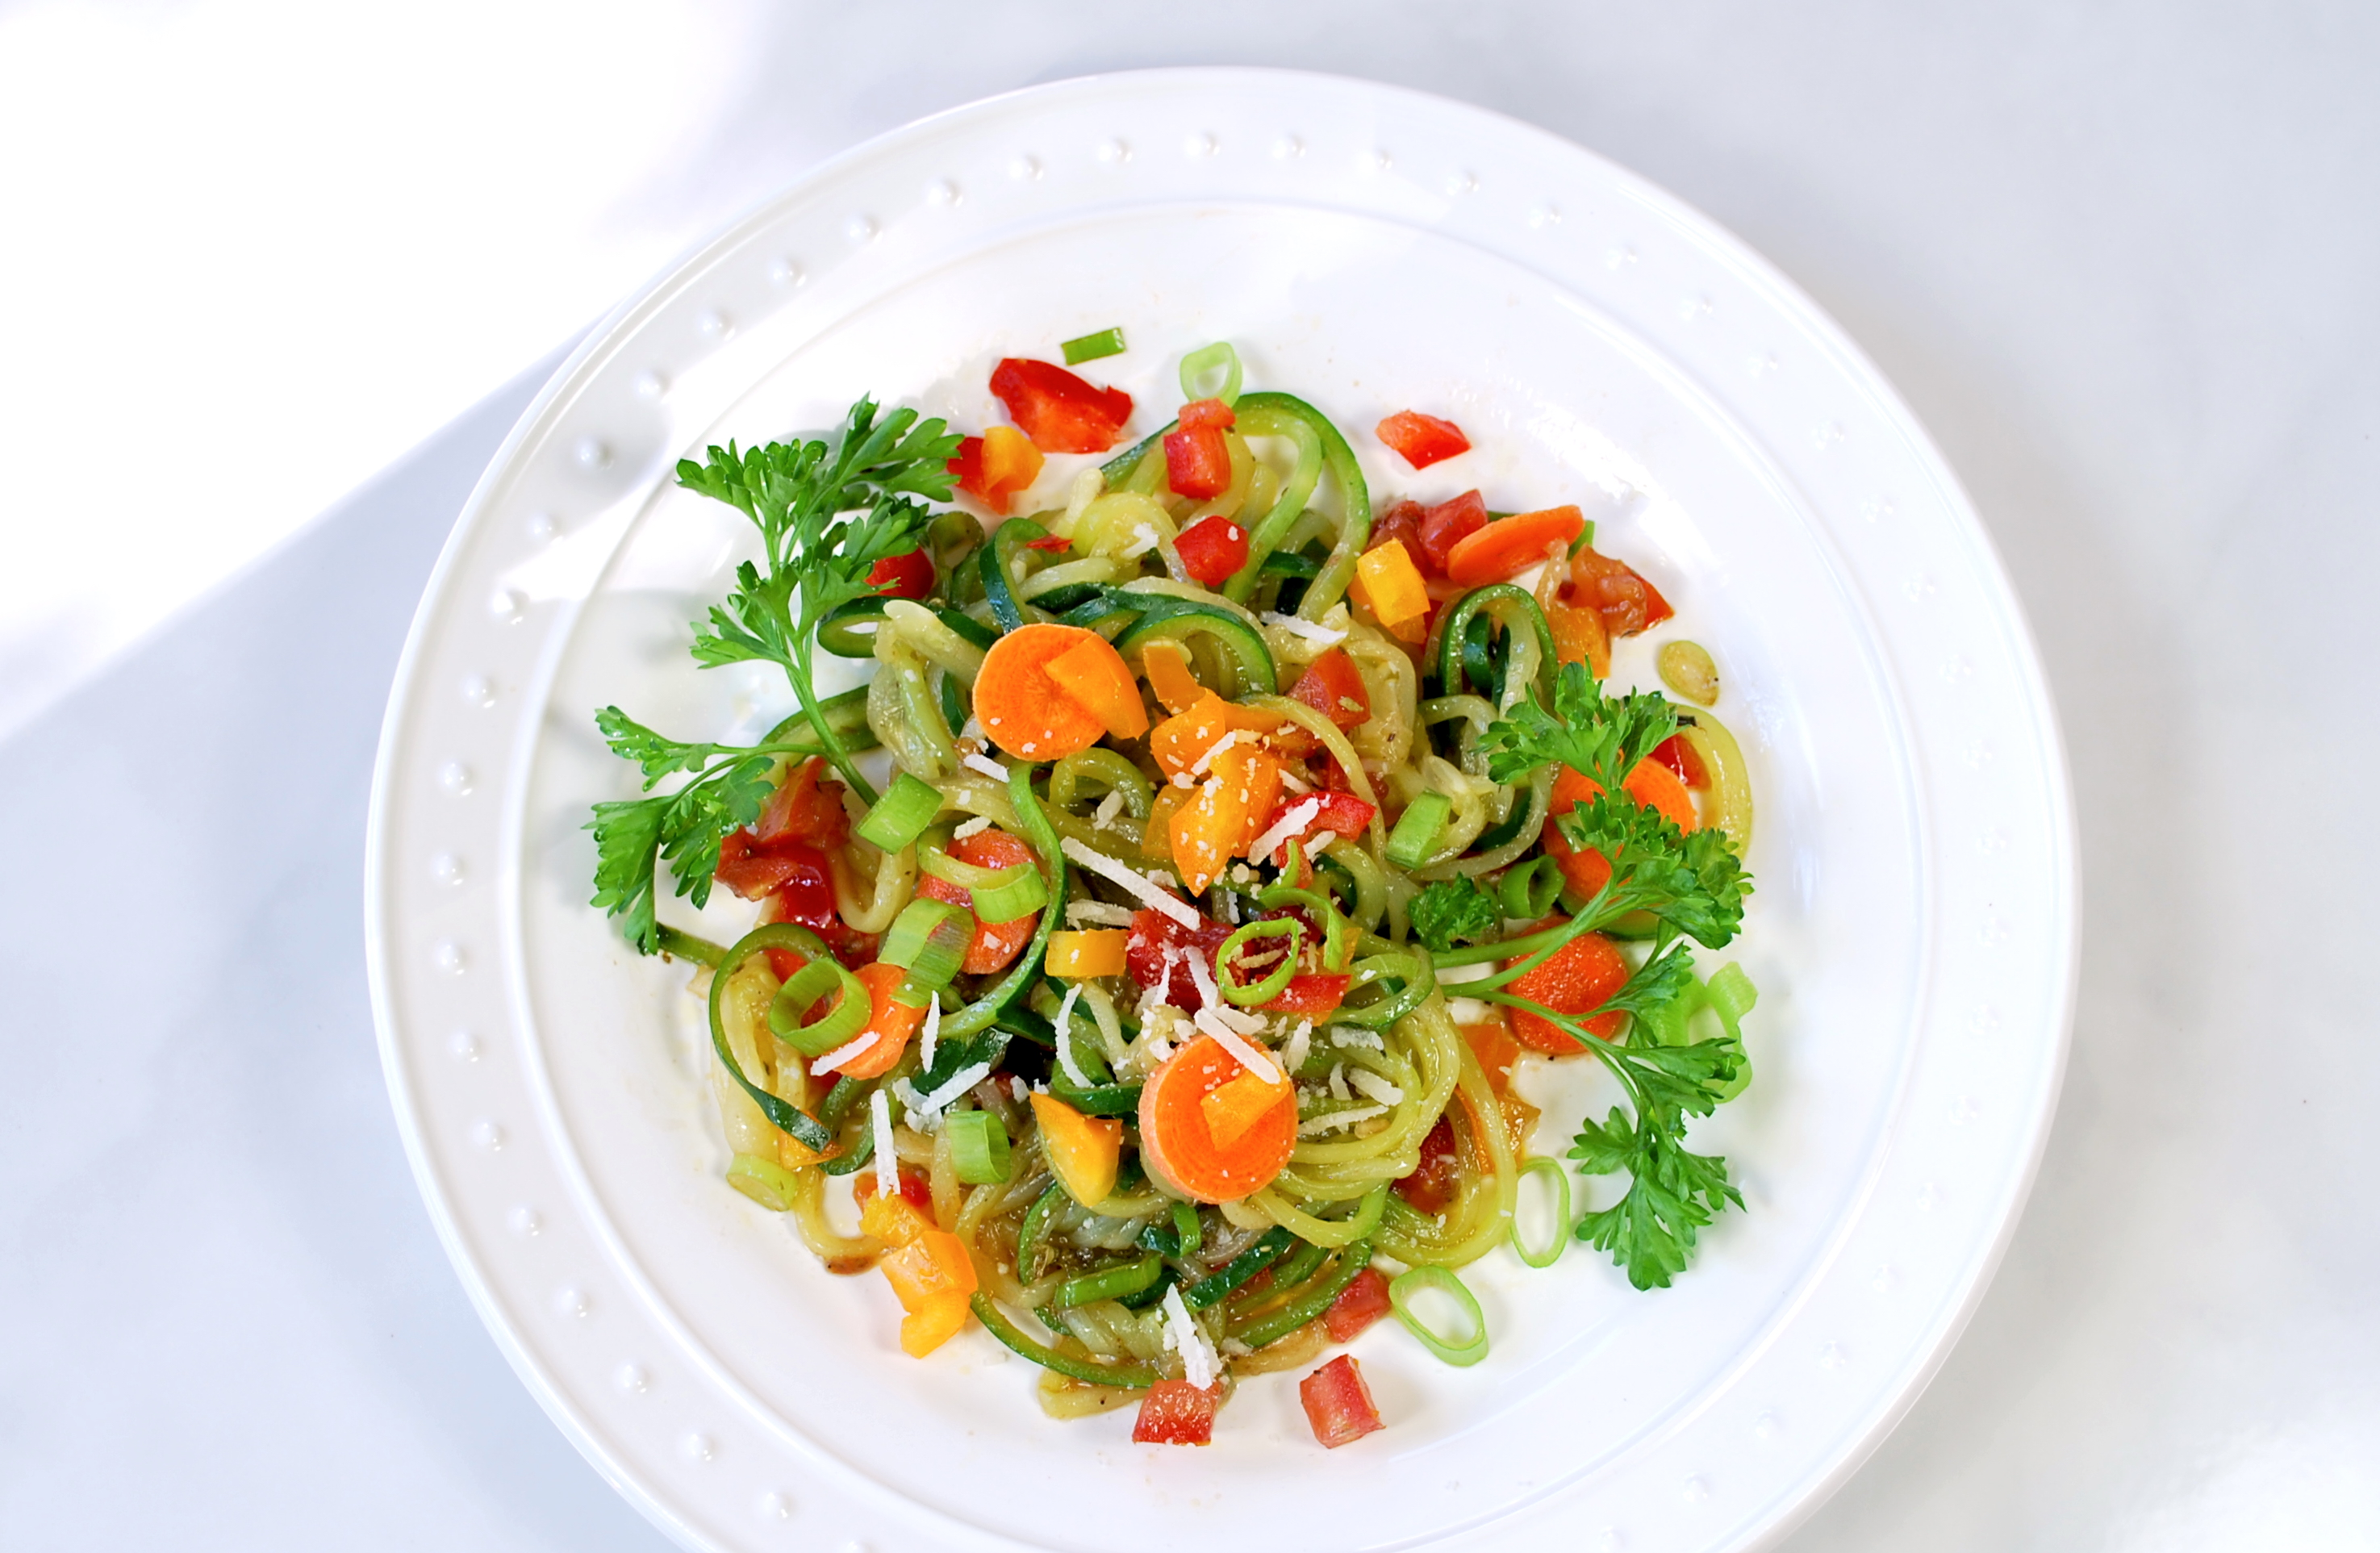 spiralizing recipes - salads - pasta primavera salad